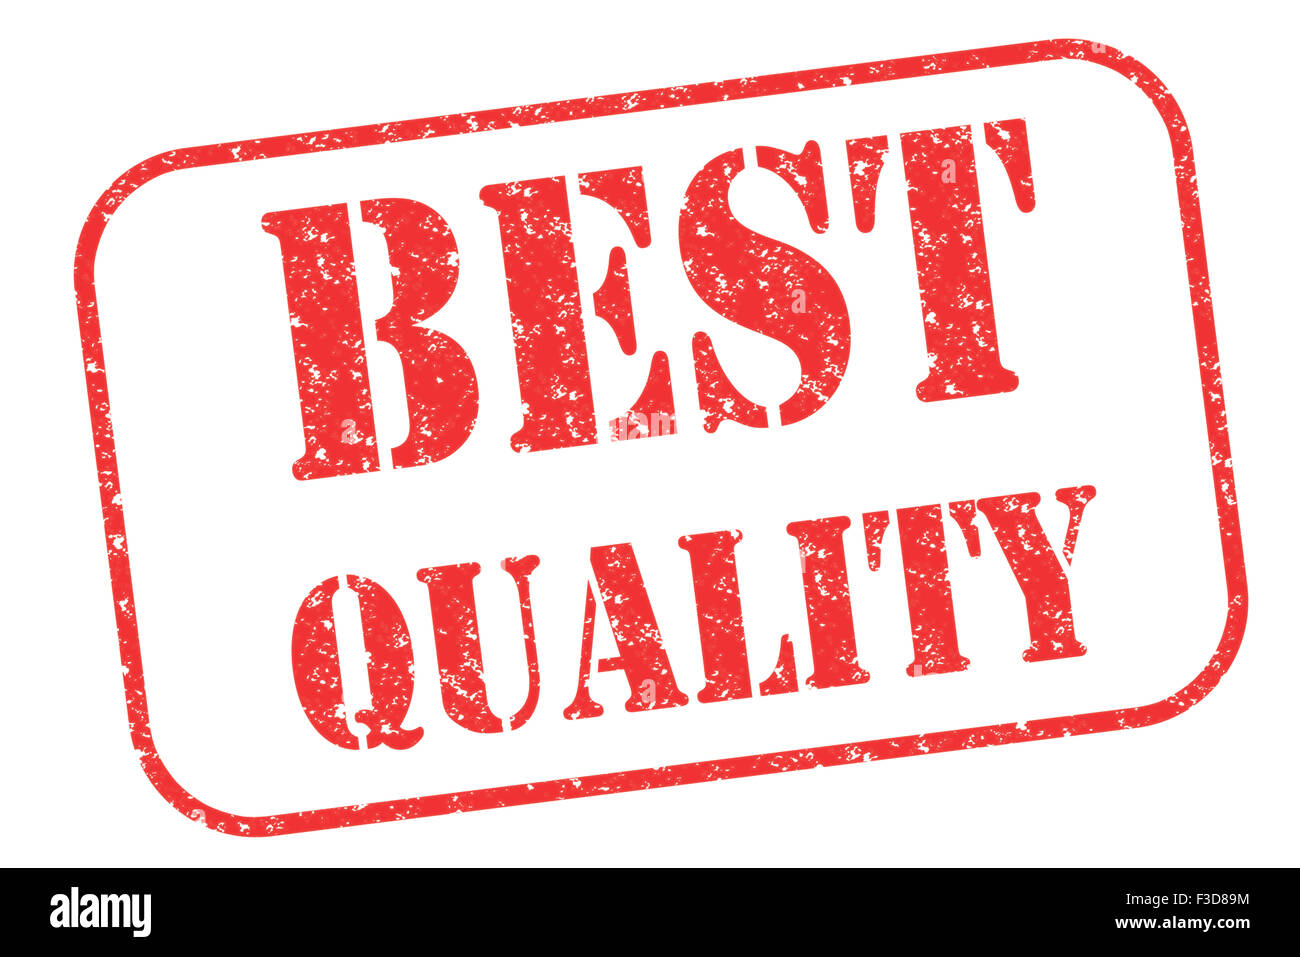 Rubber stamp 'best quality' on white - Stock Image